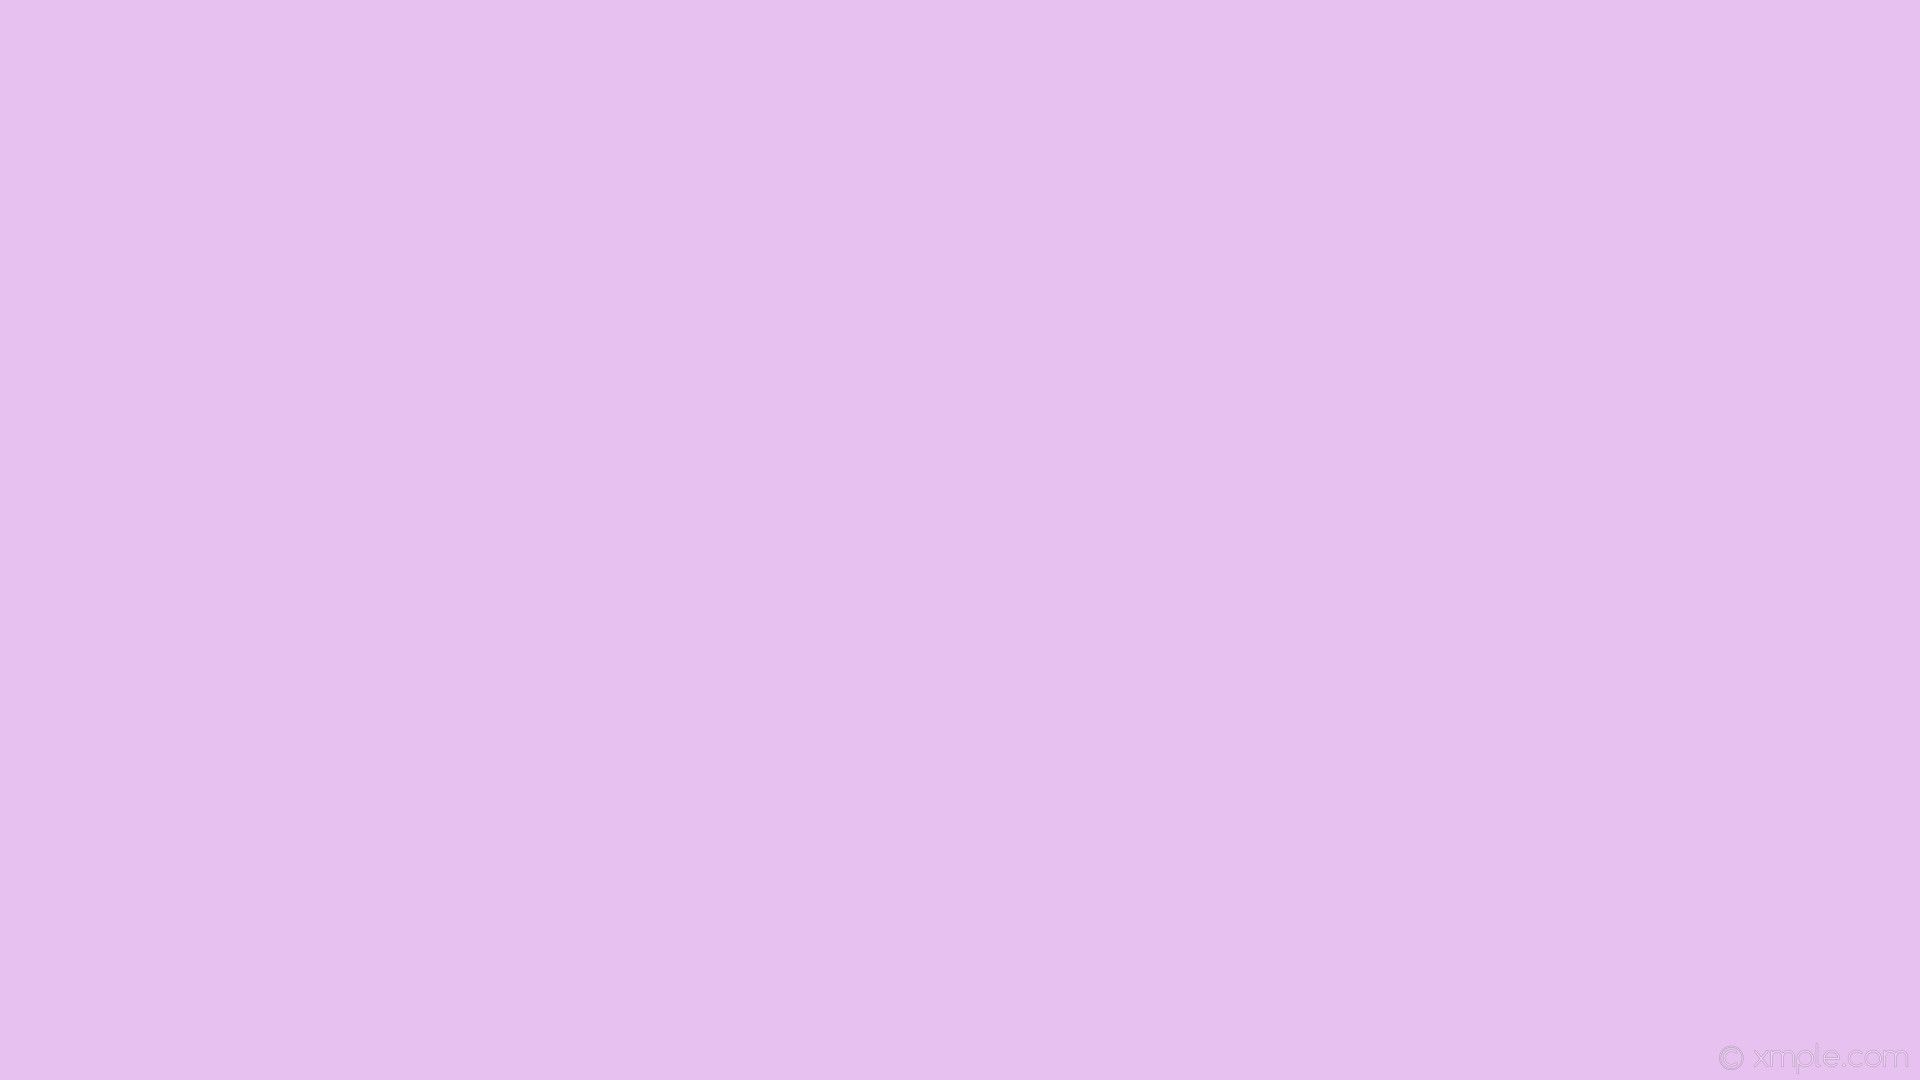 Solid Pastel Wallpapers Top Free Solid Pastel Backgrounds